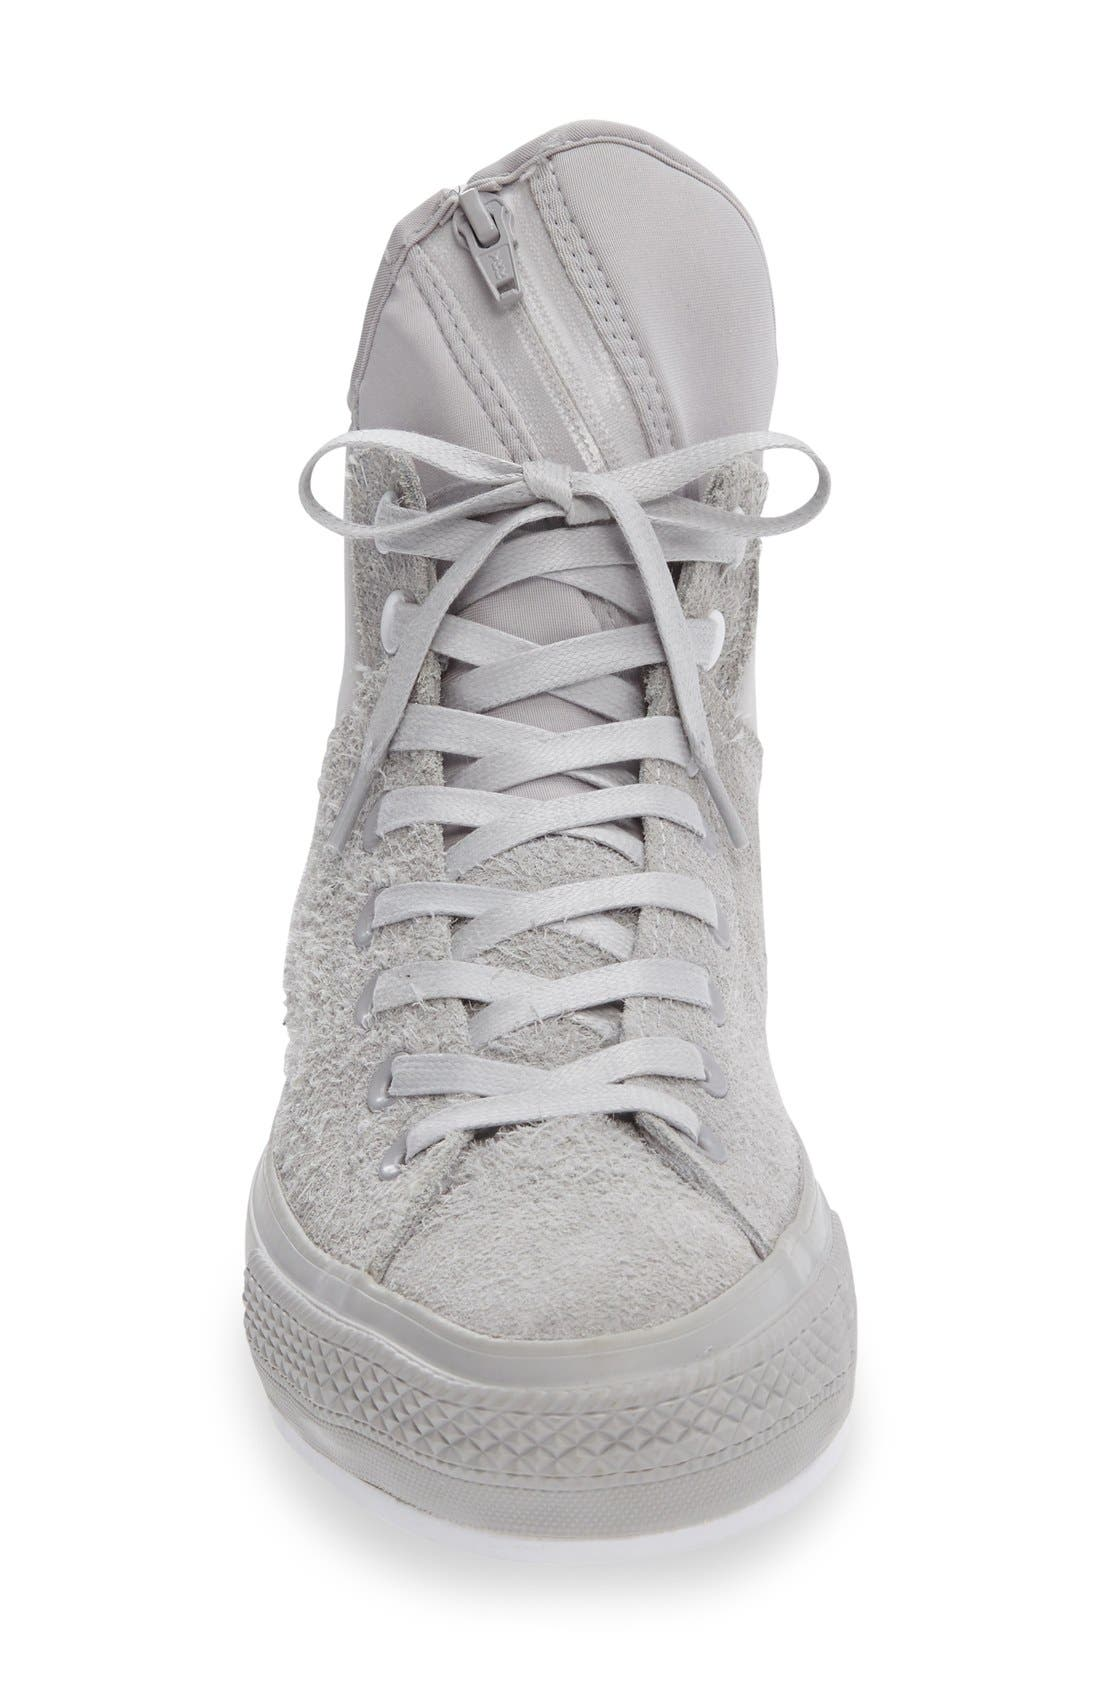 Chuck Taylor<sup>®</sup> All Star<sup>®</sup> MA-1 SE High Top Sneaker,                             Alternate thumbnail 3, color,                             095